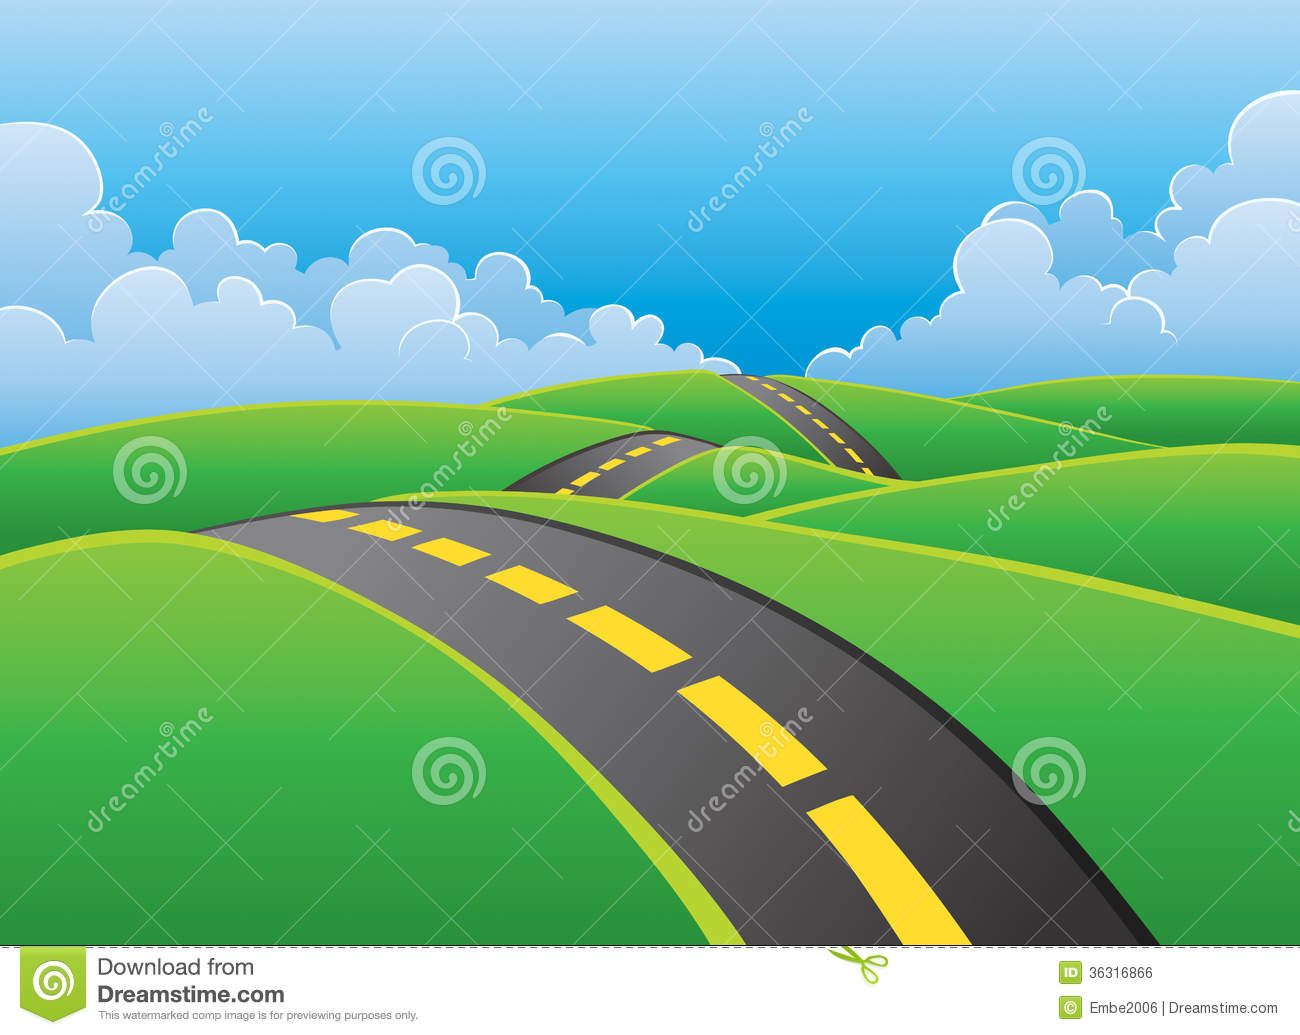 Clipart road background picture free library Awesome road background clipart for your inspiration | banyumasonline picture free library